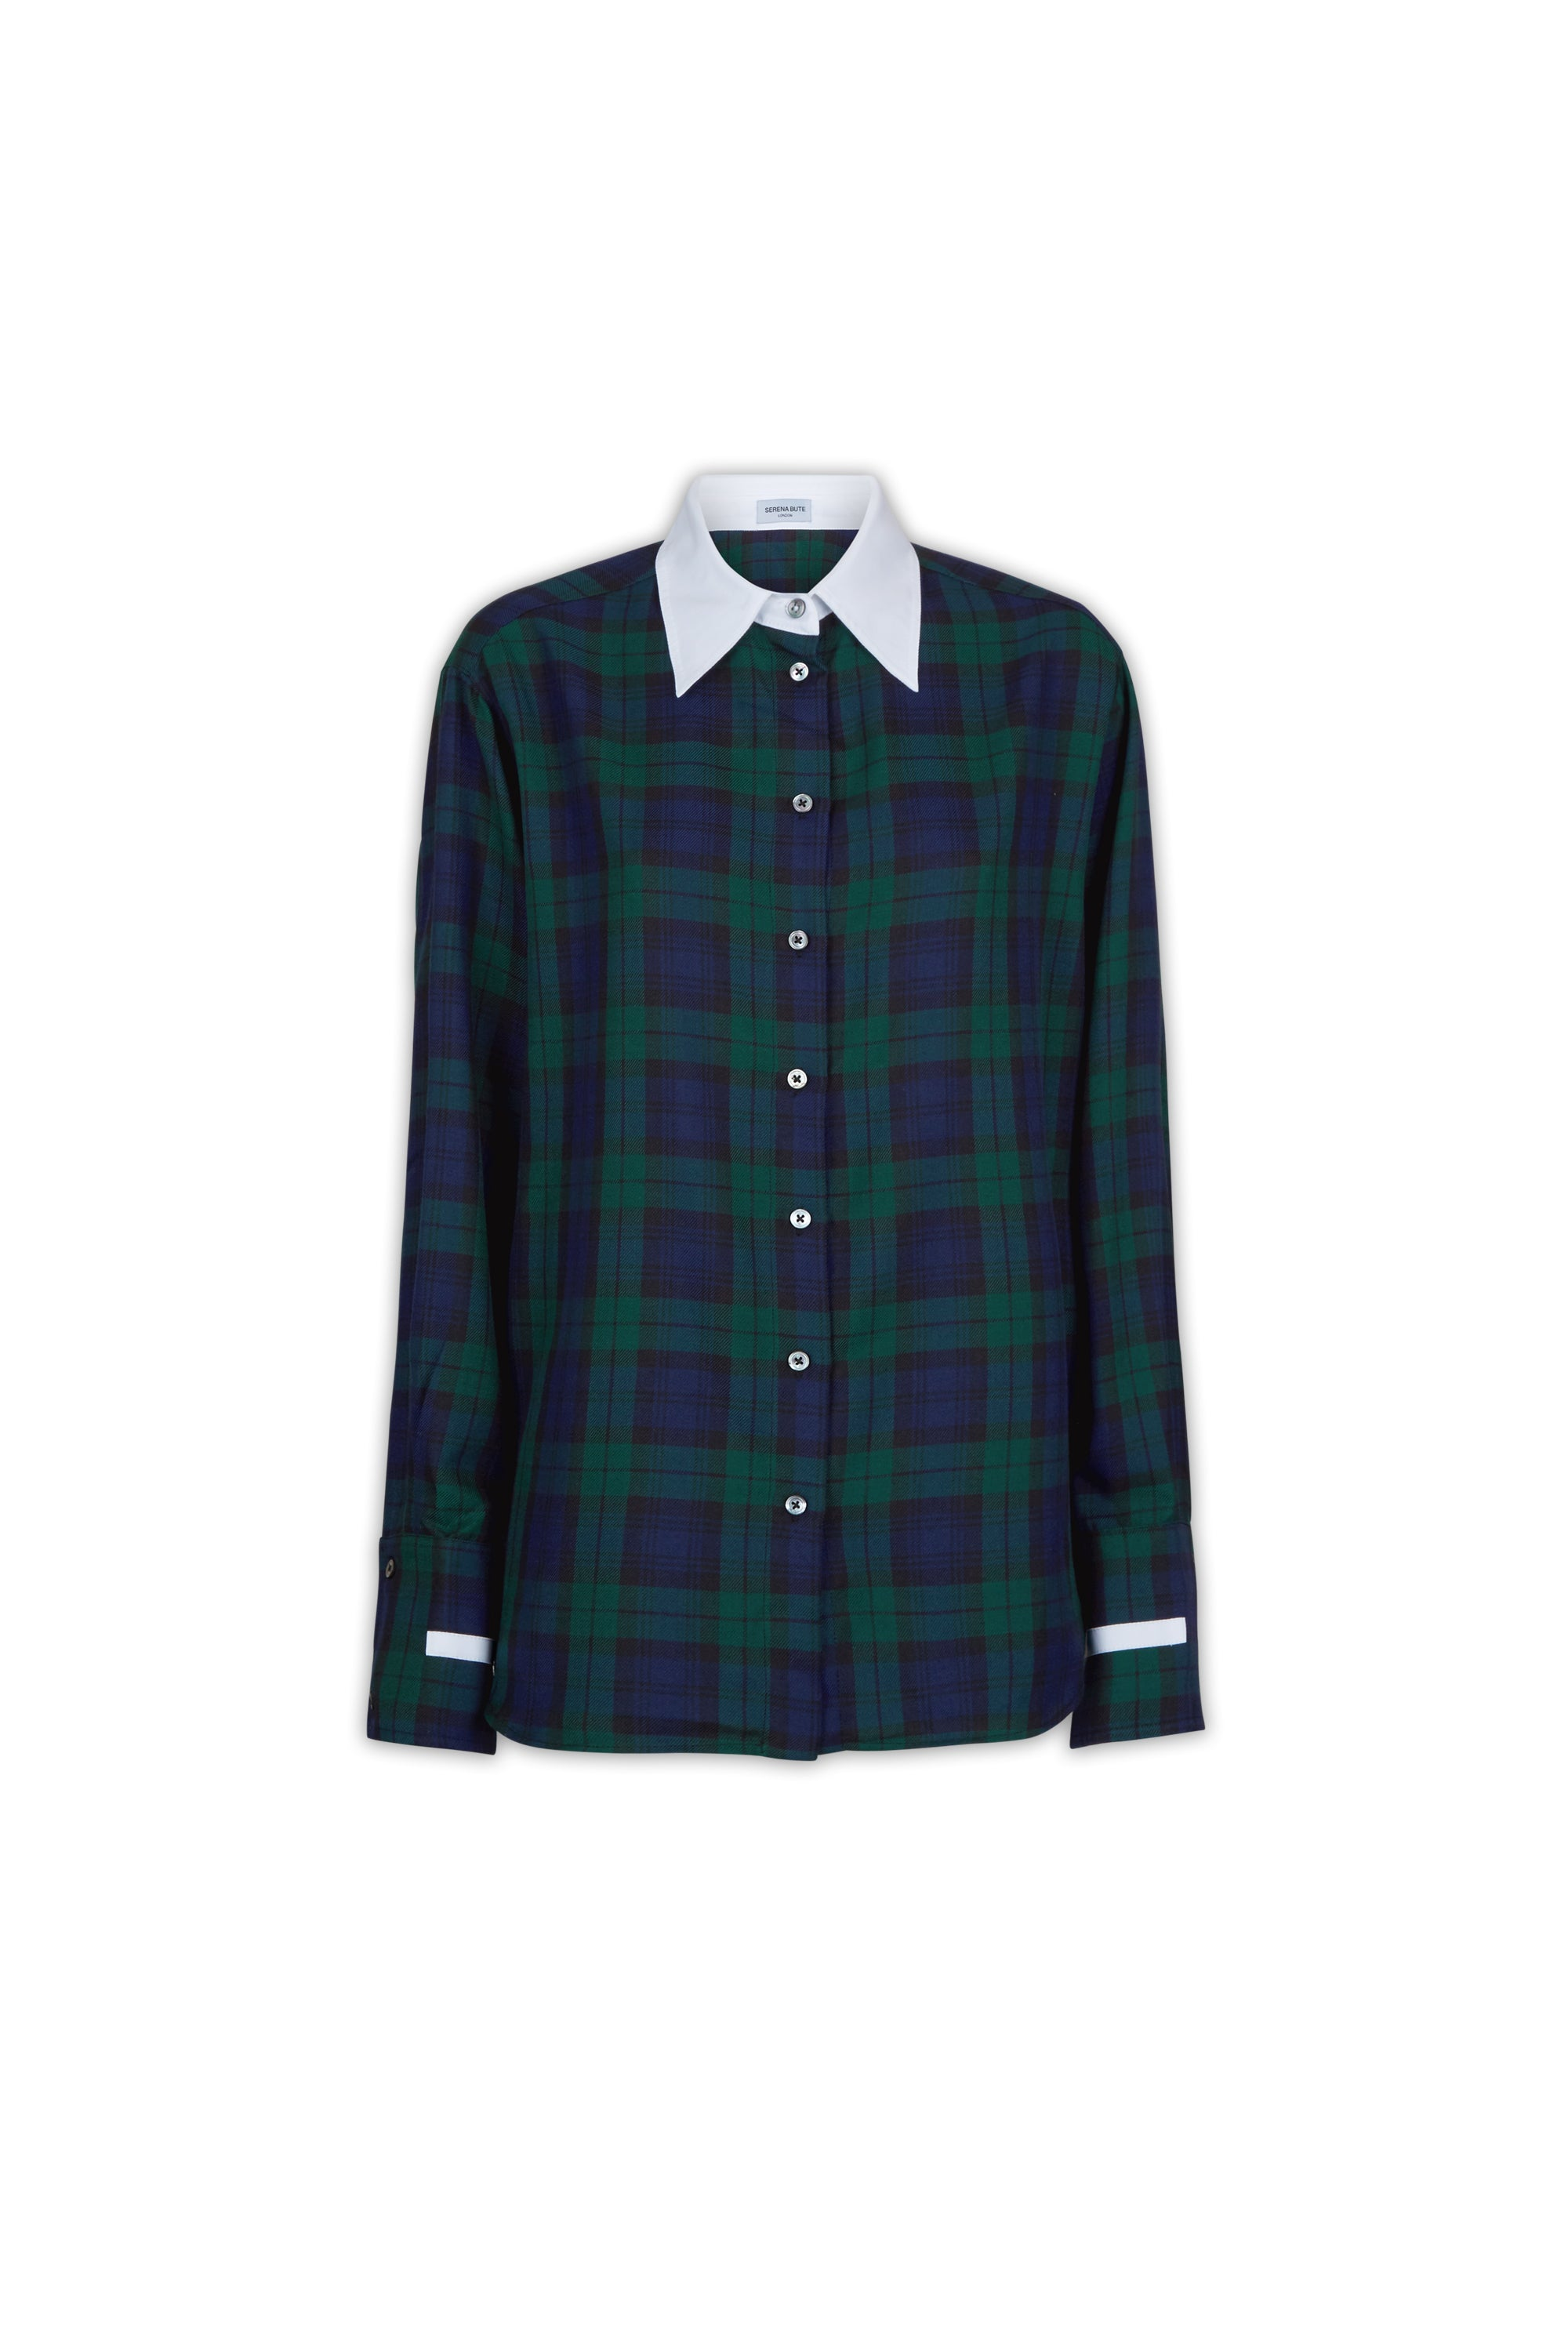 The Oversized Shirt - Navy & Green Plaid Cotton - SERENA BUTE